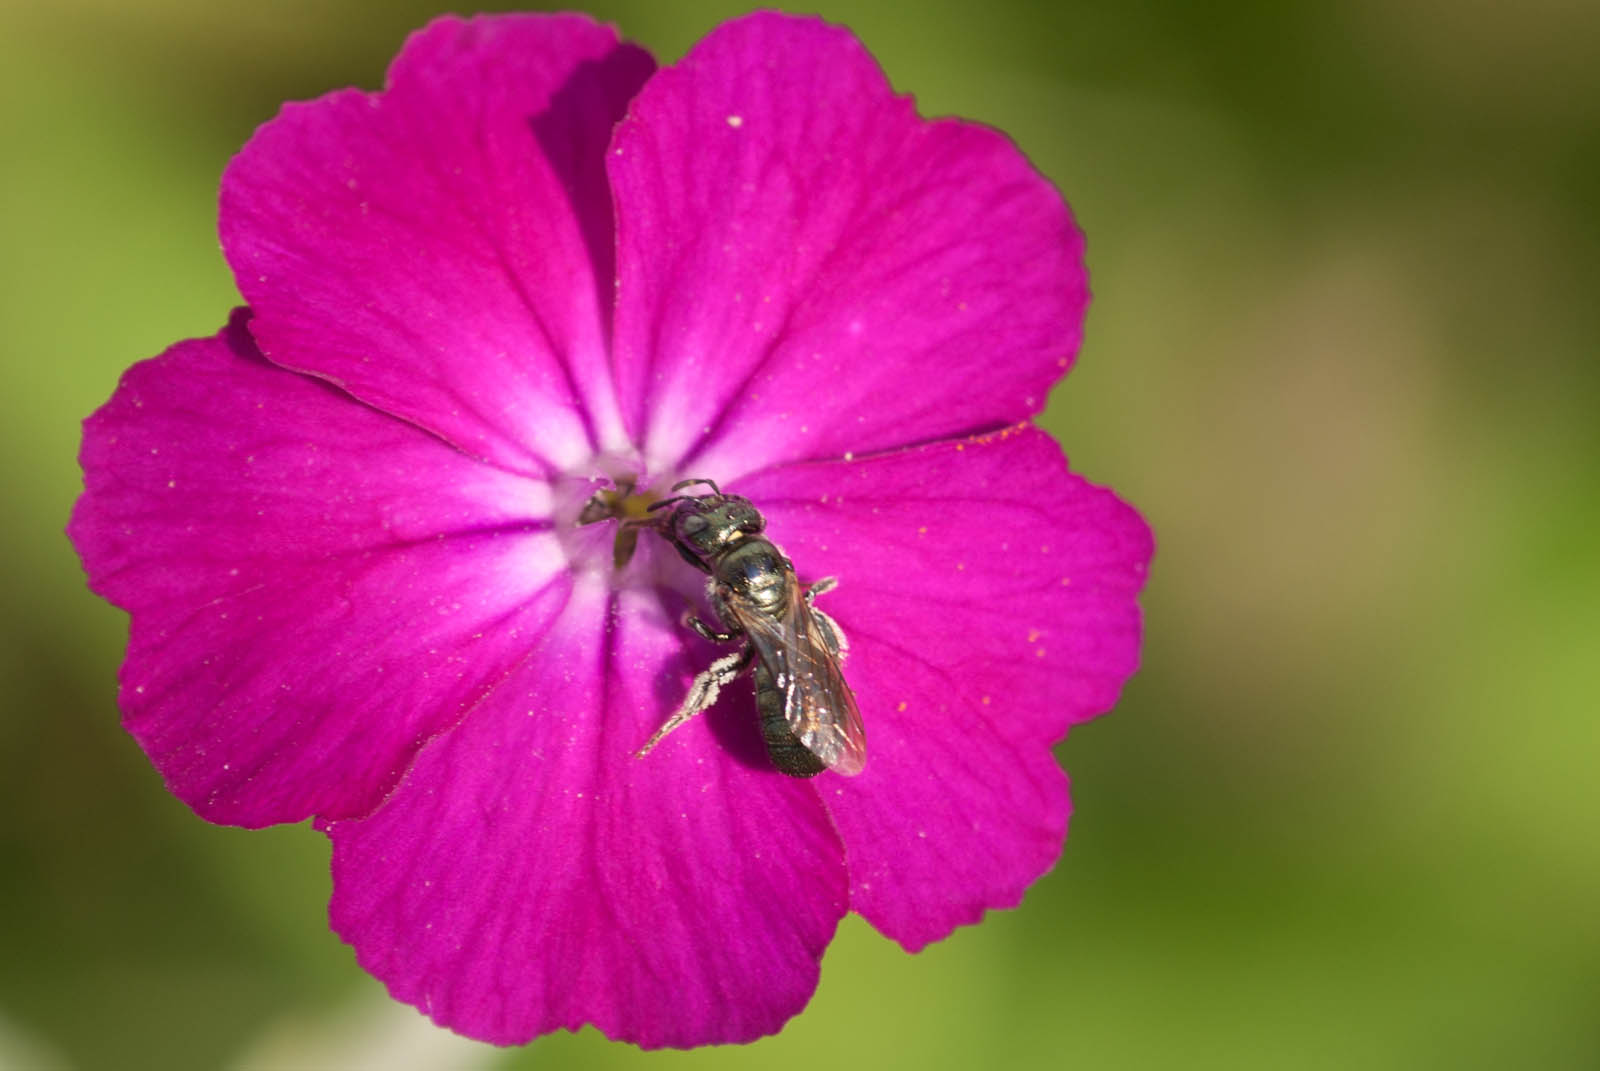 A bright pink rose campion flower view full size mightylinksfo Choice Image